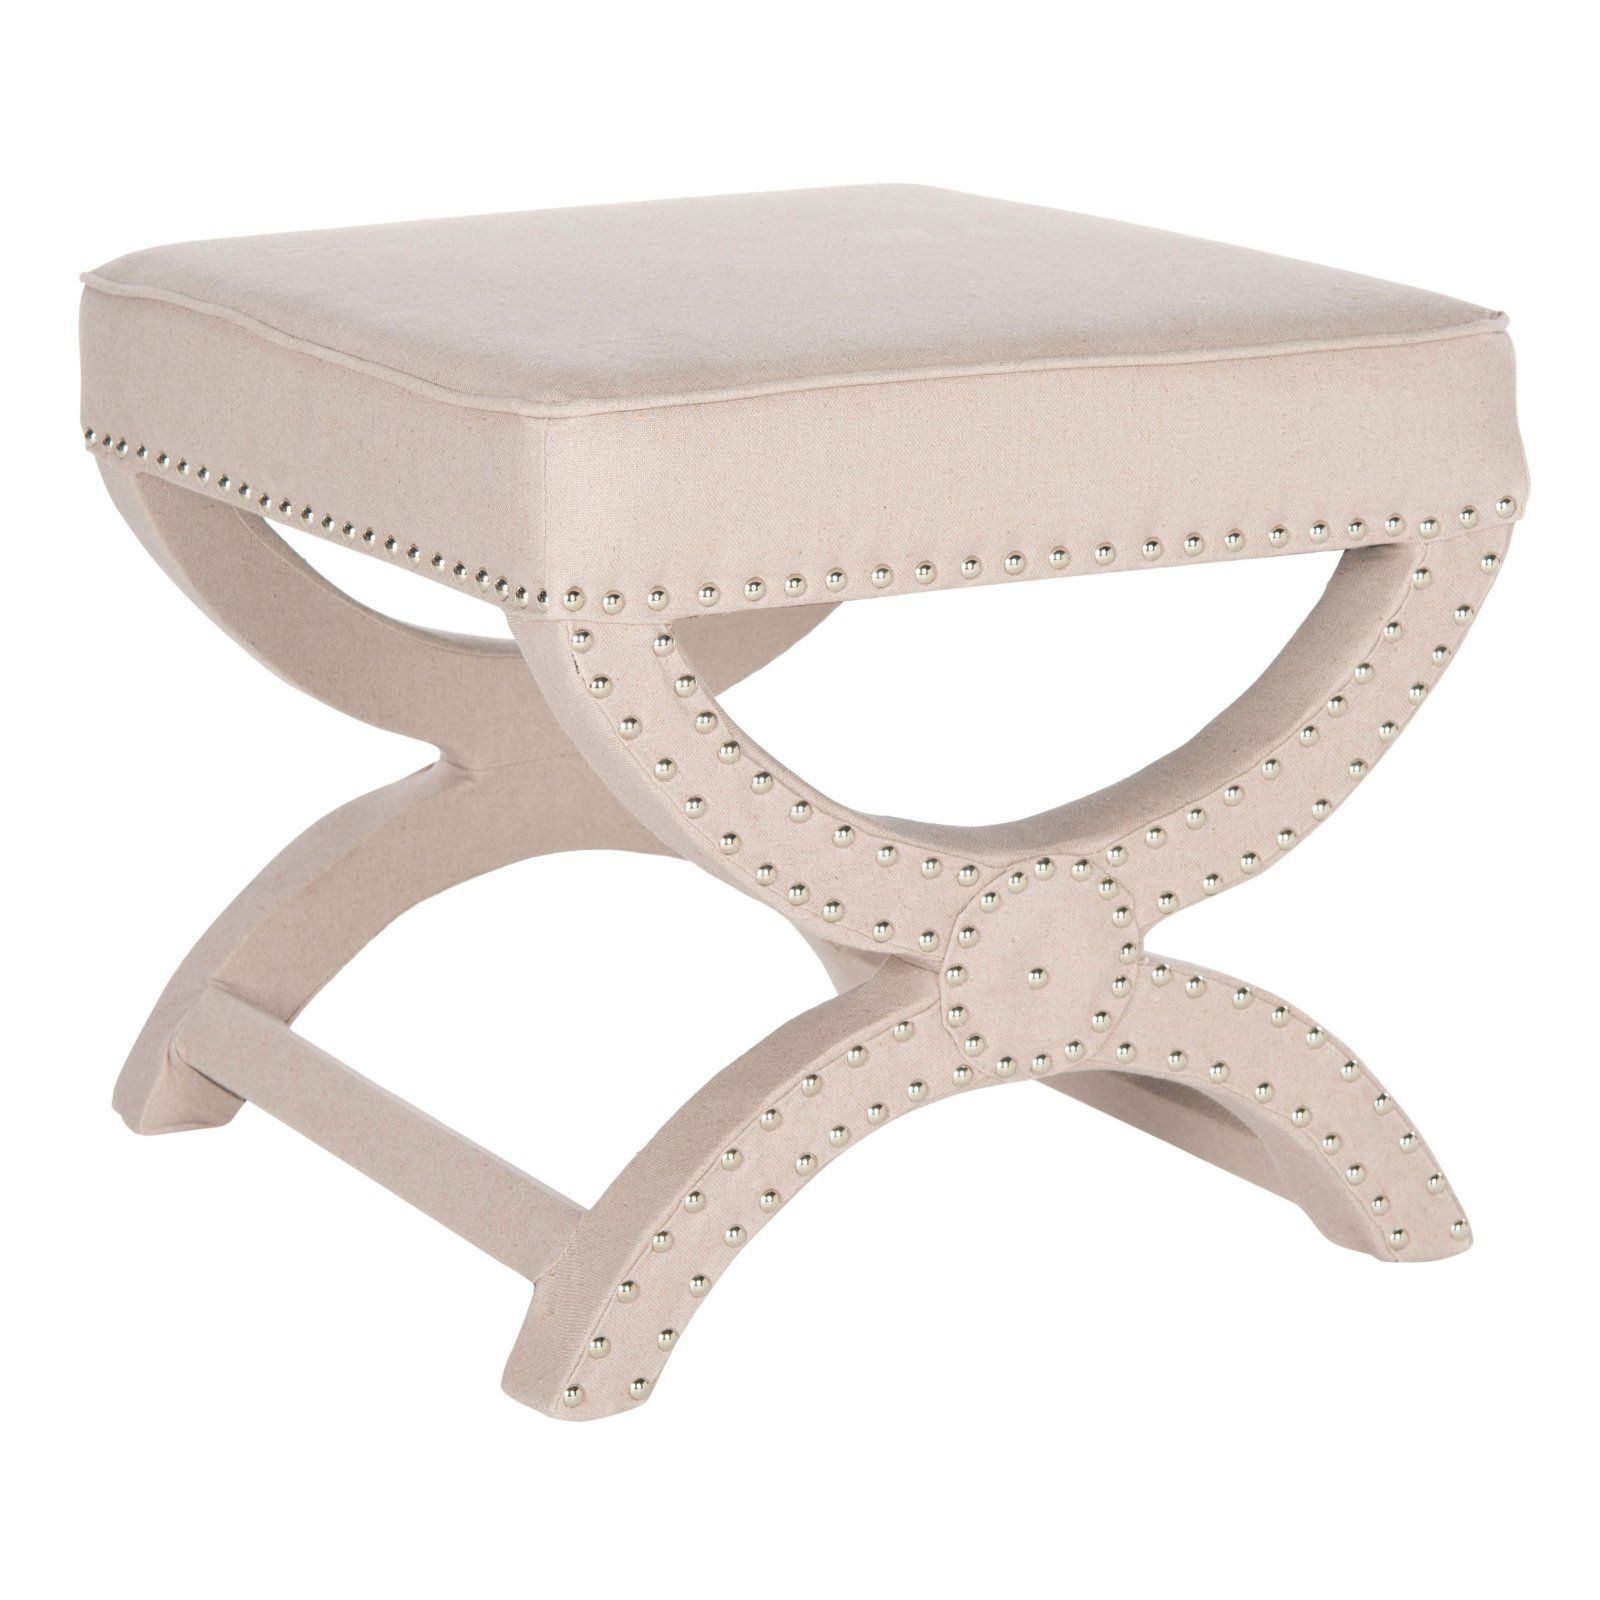 Safavieh Mystic Square Ottoman with Nailhead Trim